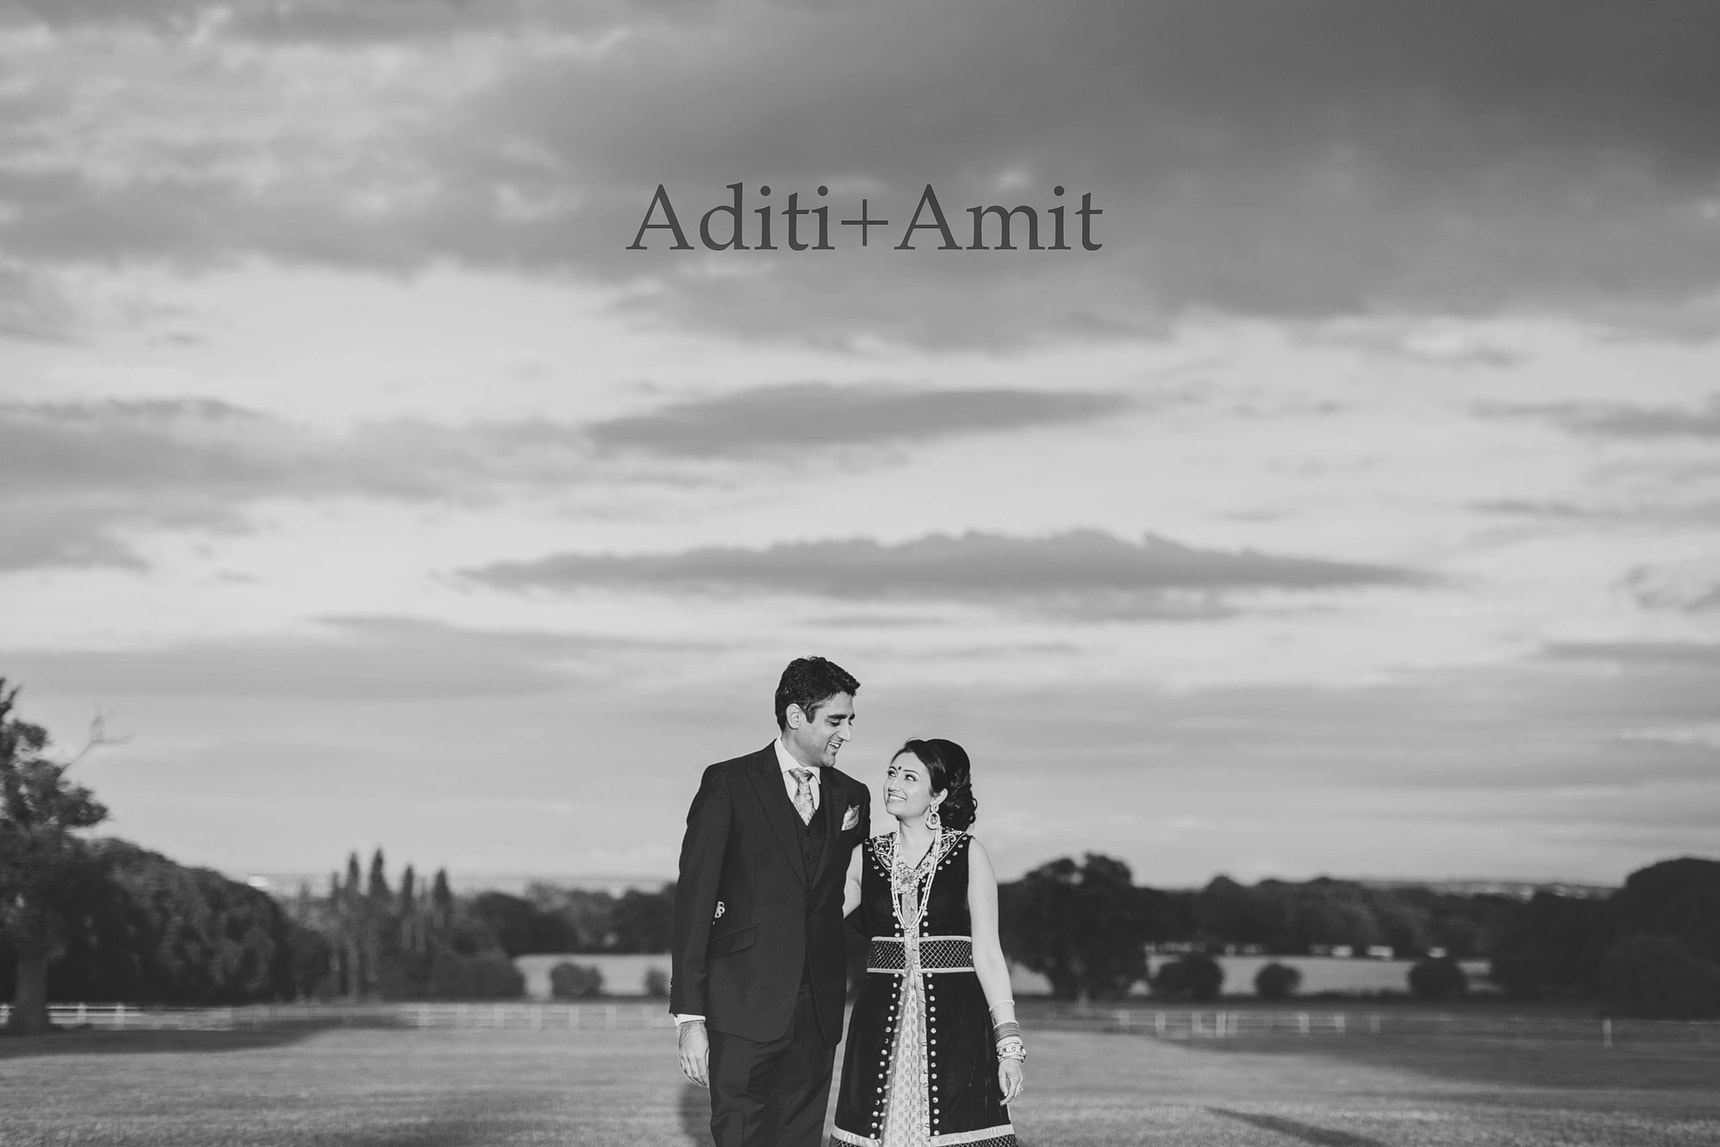 aditi and amits hindu wedding